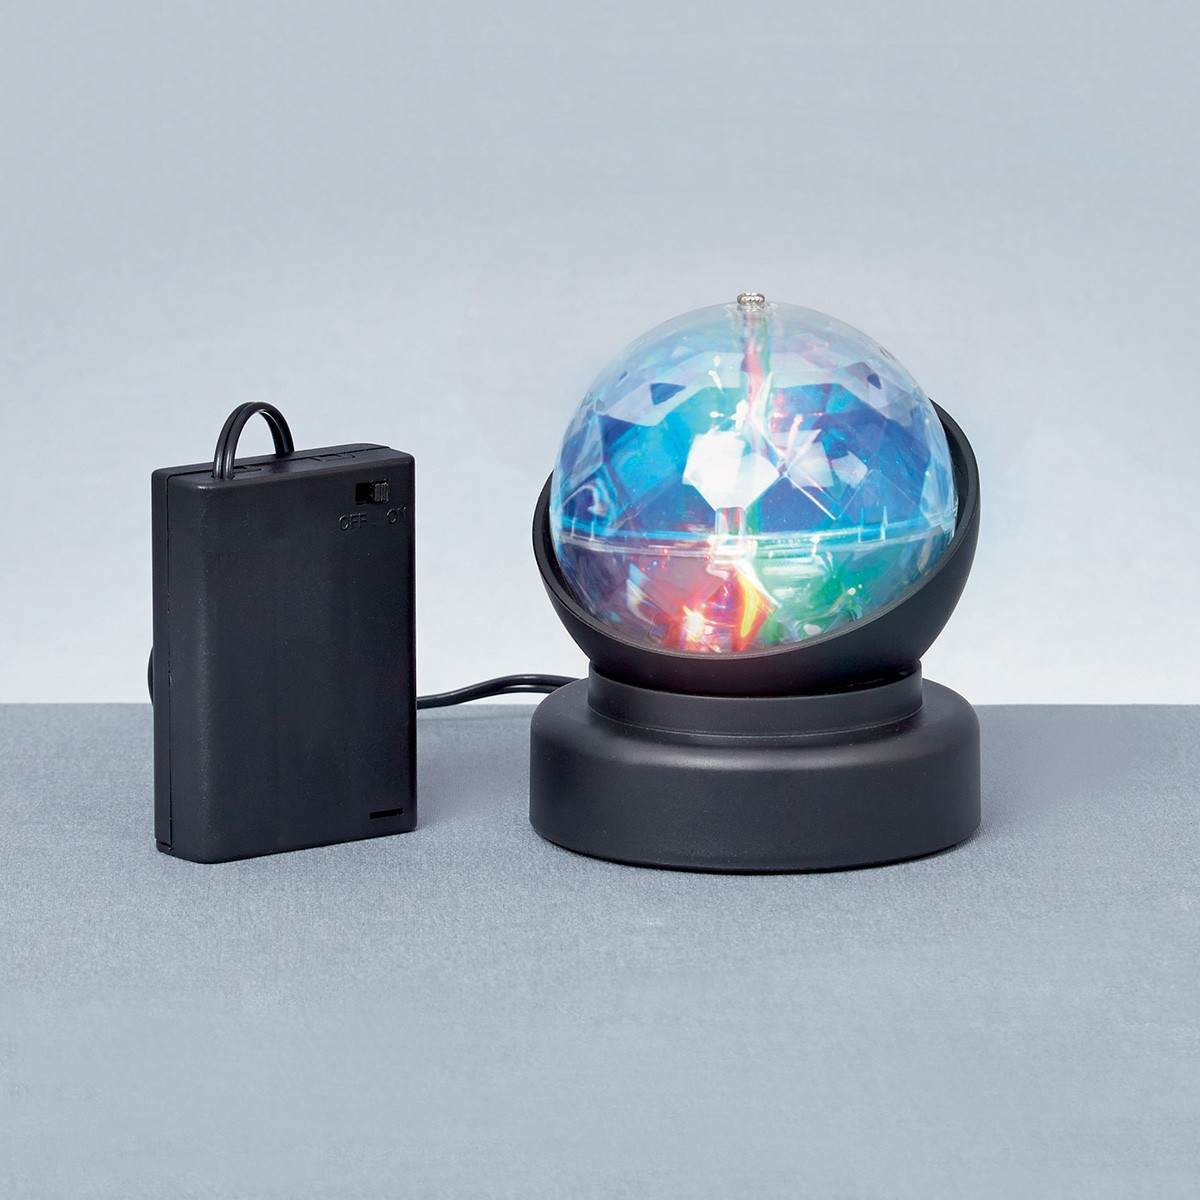 Buy cheap Disco ball - compare products prices for best UK deals